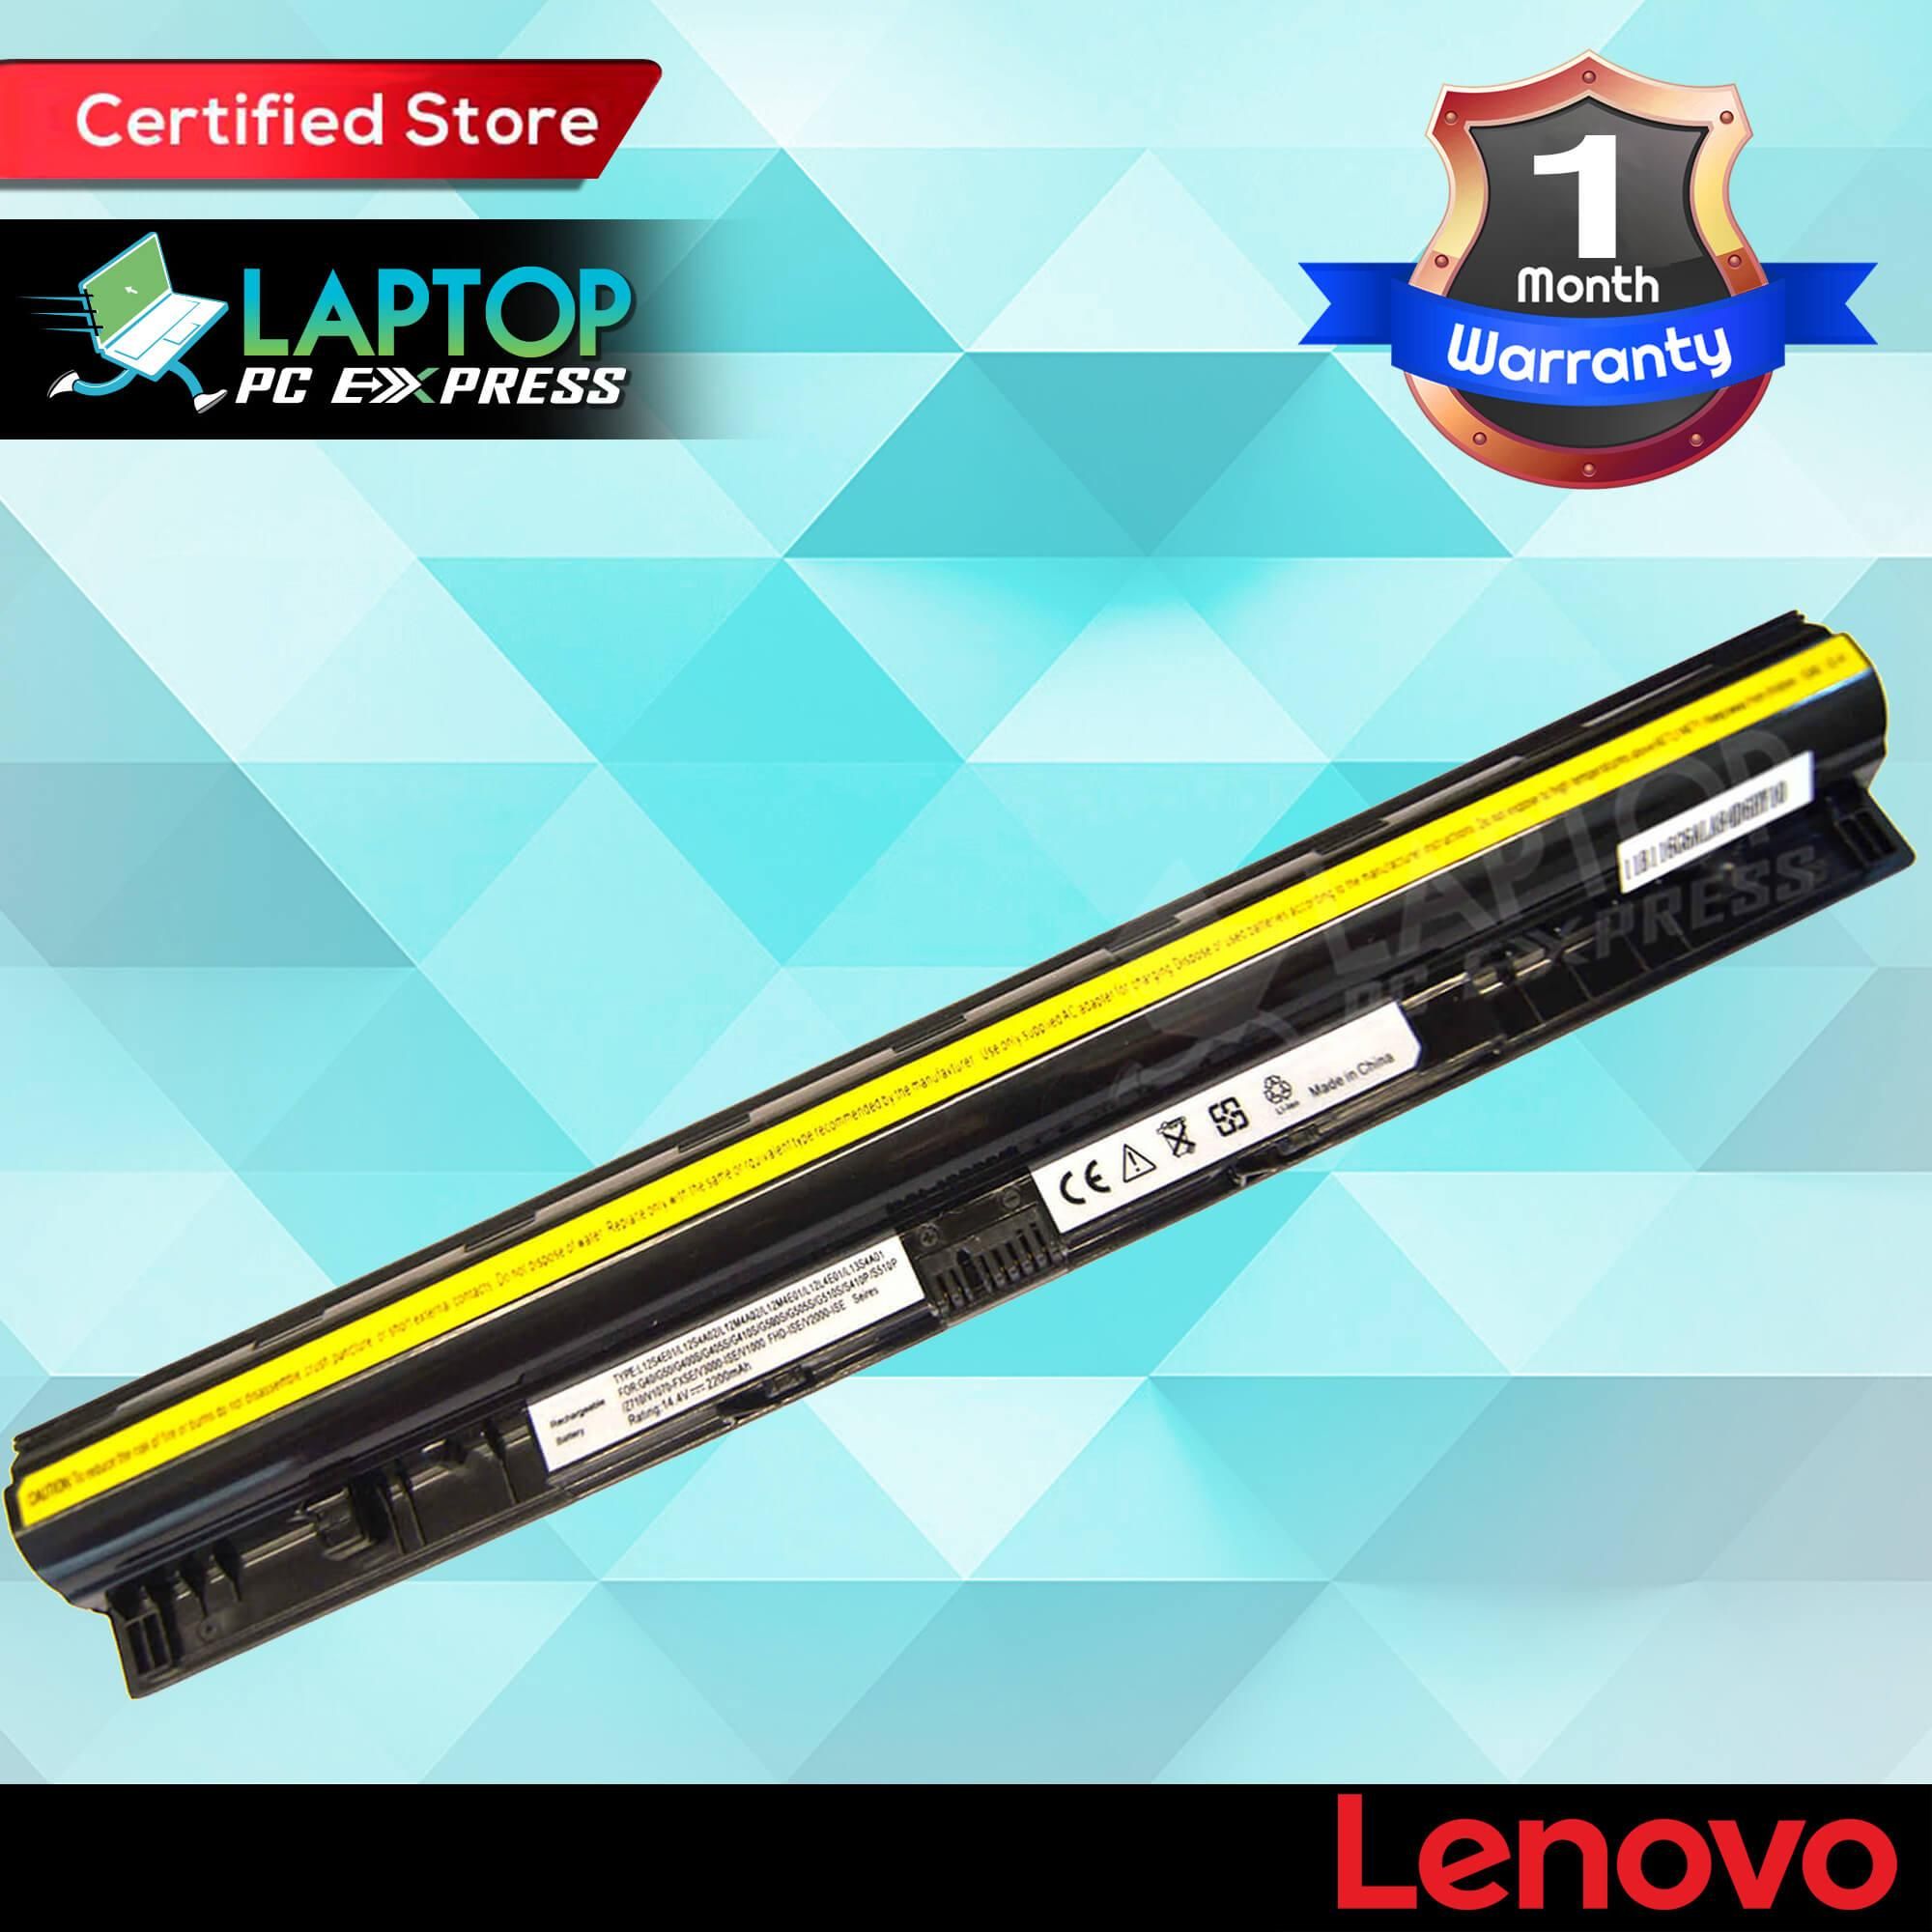 Lenovo Philippines Computer Batteries For Sale Prices Keyboard Laptop Ideapad G40 30 45 70 75 L12s4a02 L12m4a02 L12m4e01 L13s4a01 L12l4a02 L12l4e01 Notebook Battery Model